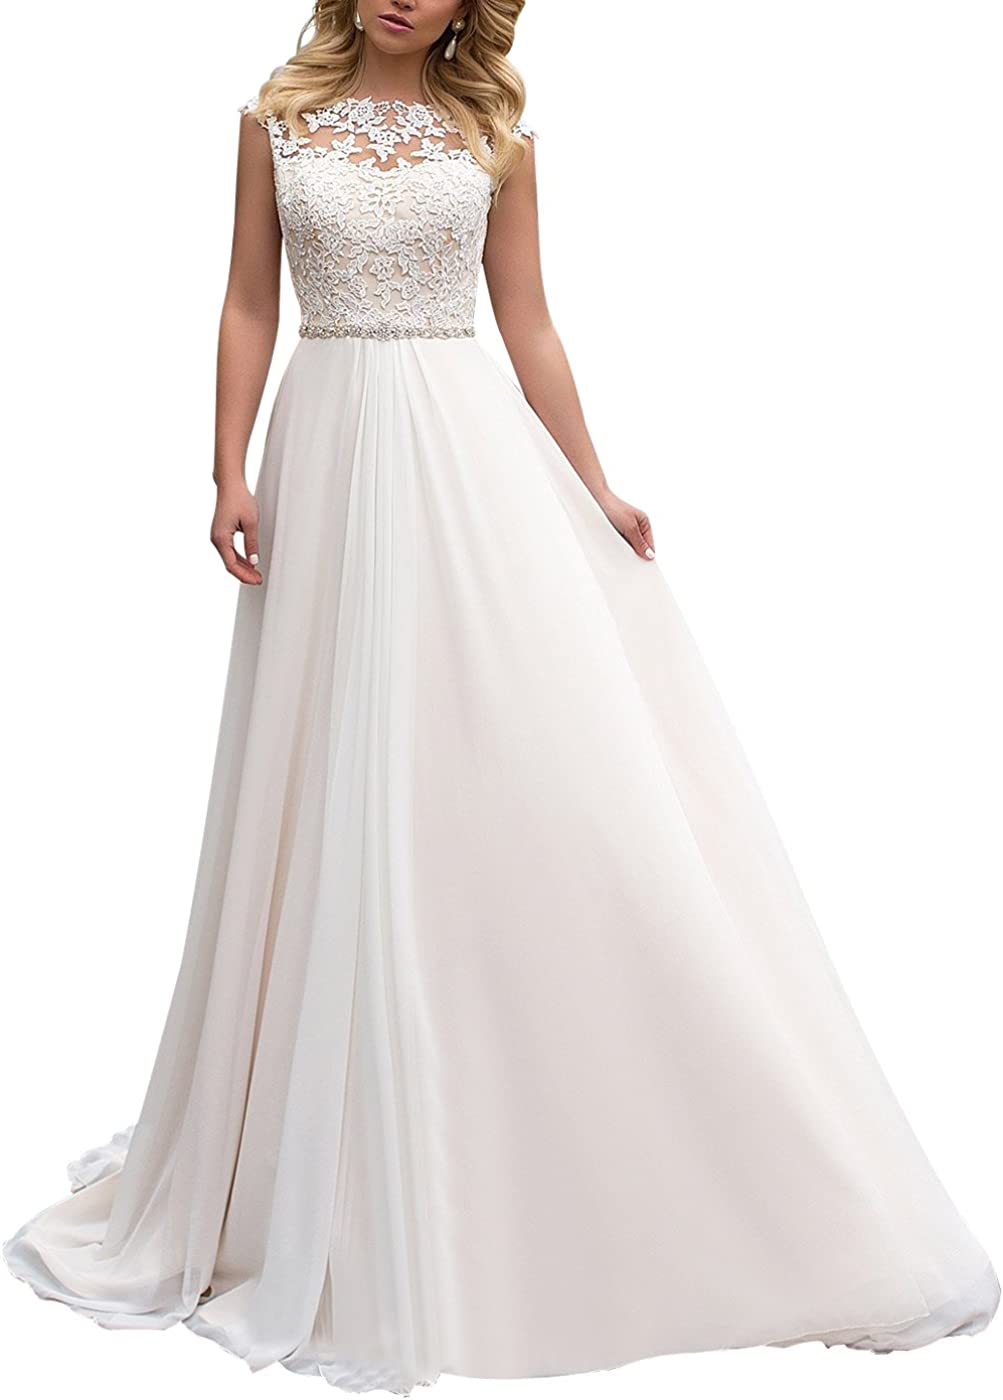 Yilis High Neck Lace Wedding Dress Chiffon With Beads Belt Beach Bridal Gowns At Amazon Women S Clothing Store